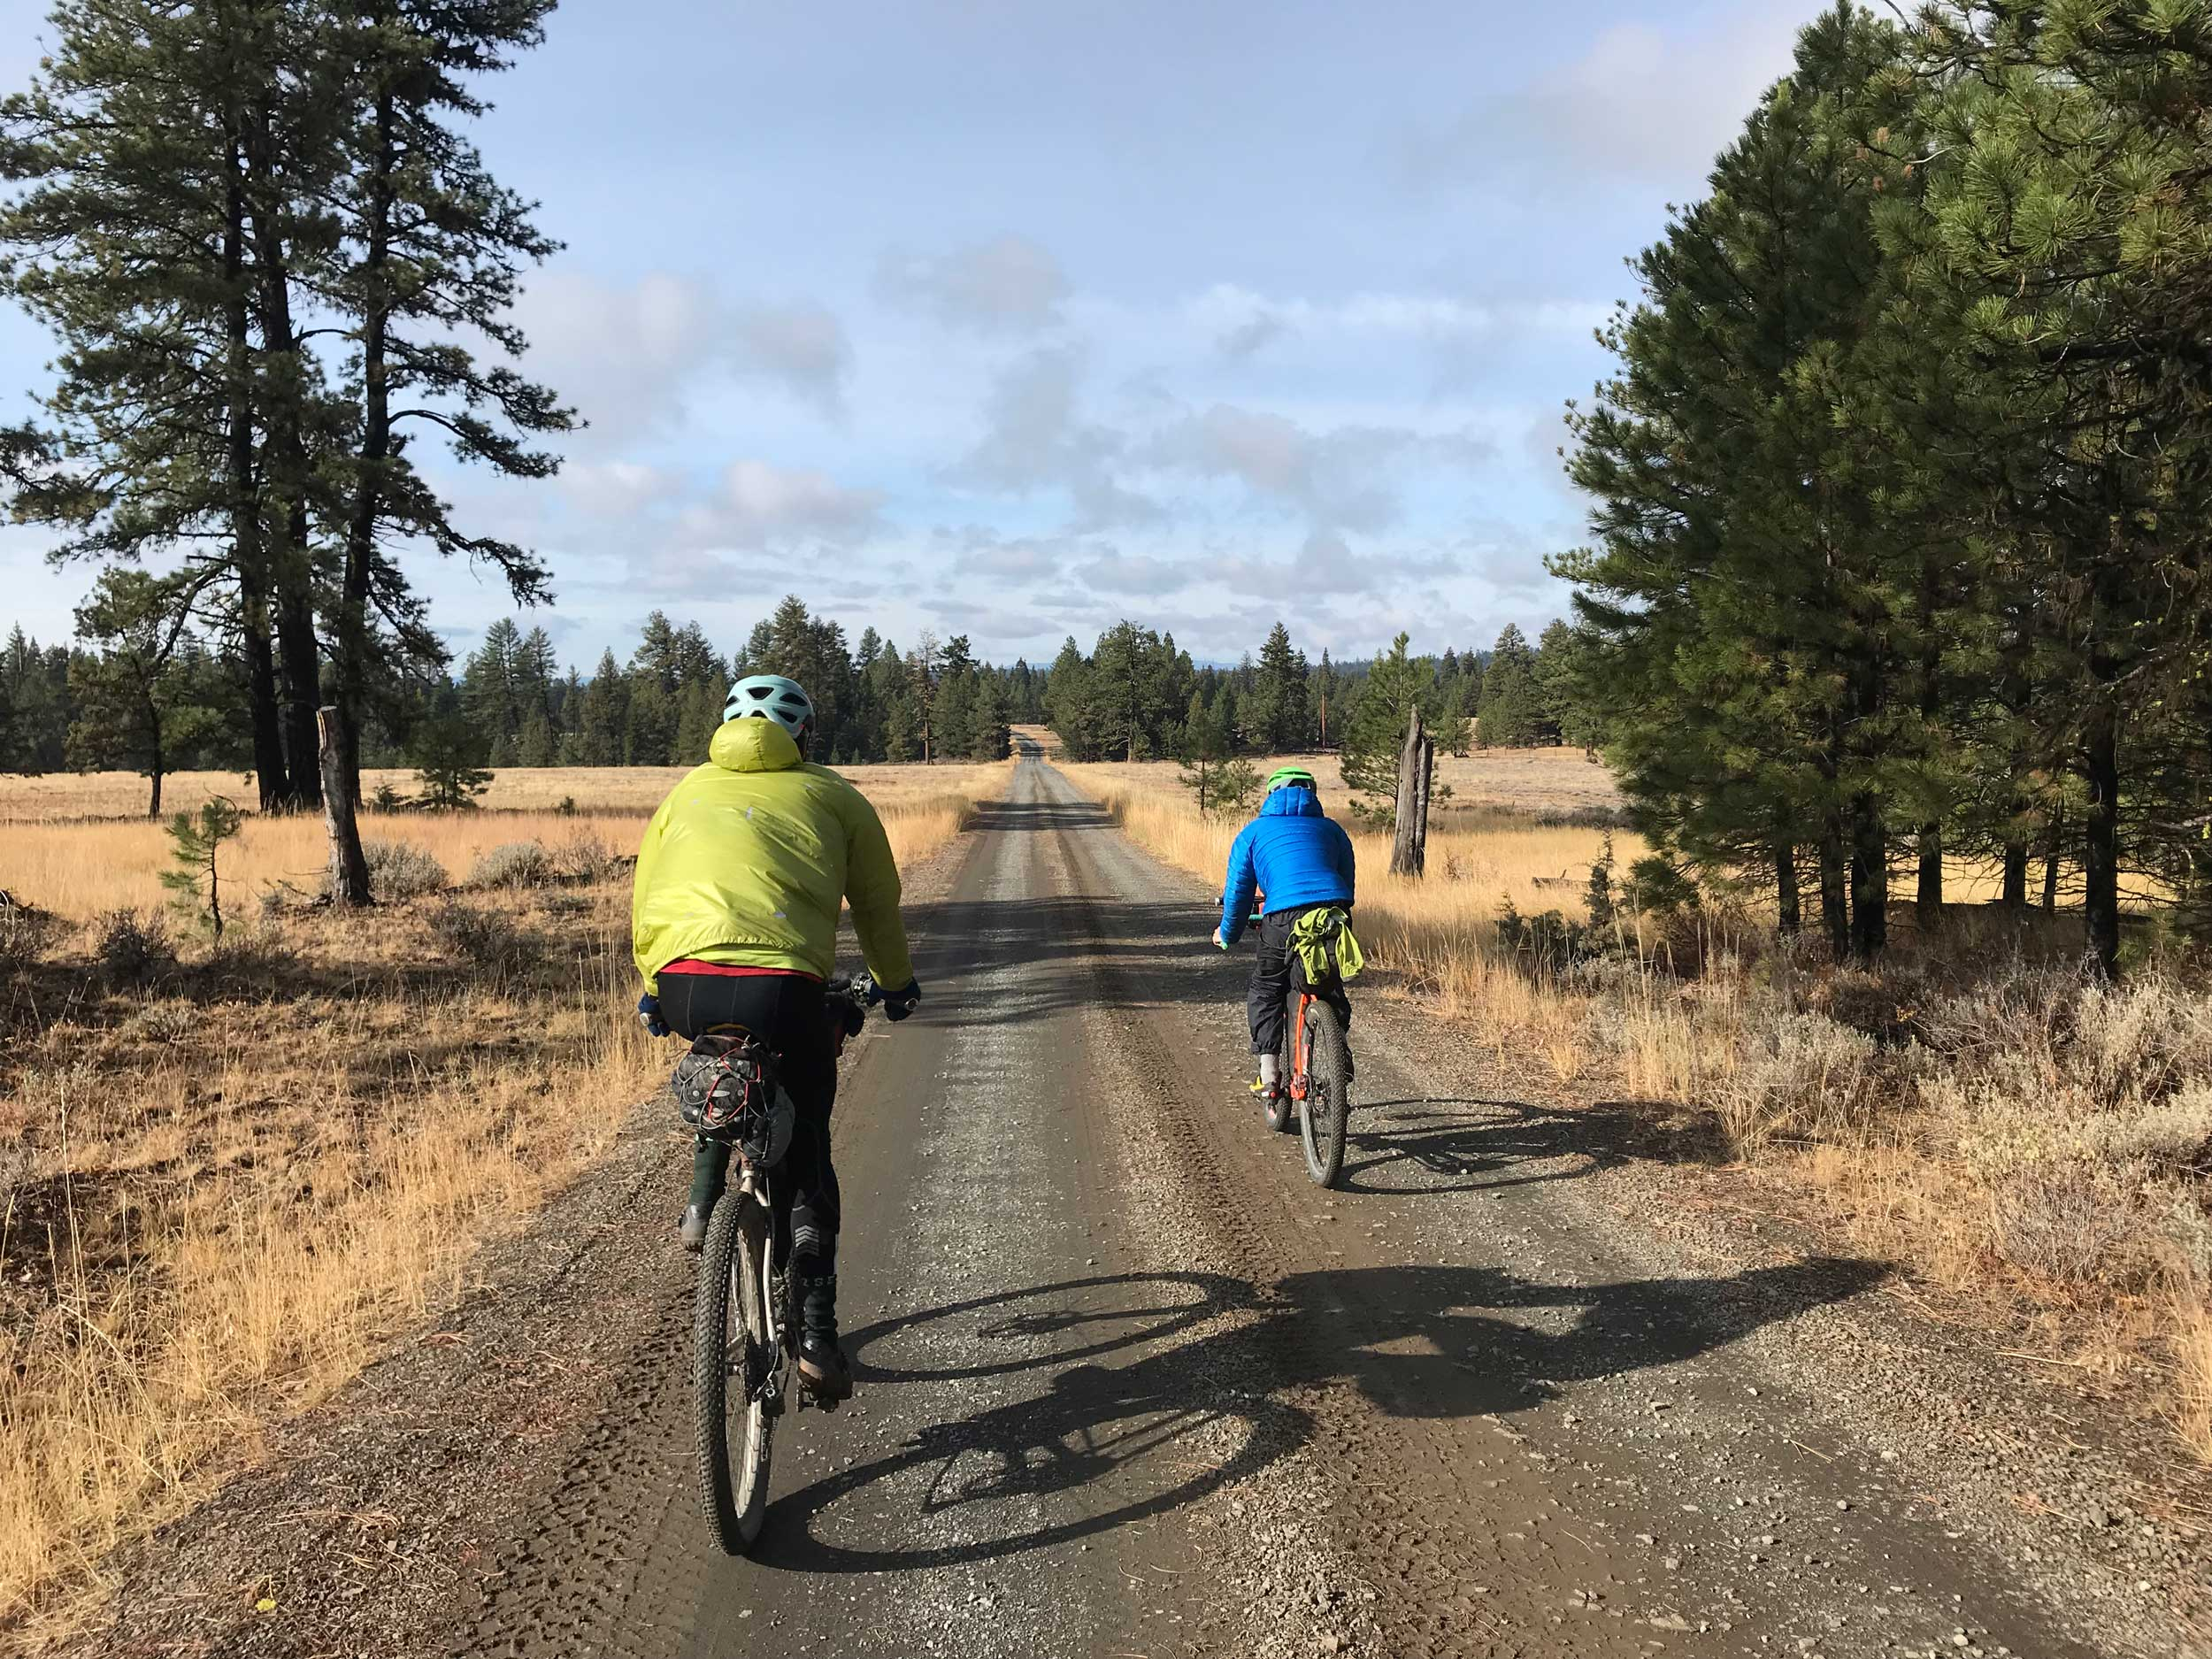 OCHOCO-OVERLANDER-LONG-ROAD-2RIDERS.jpg